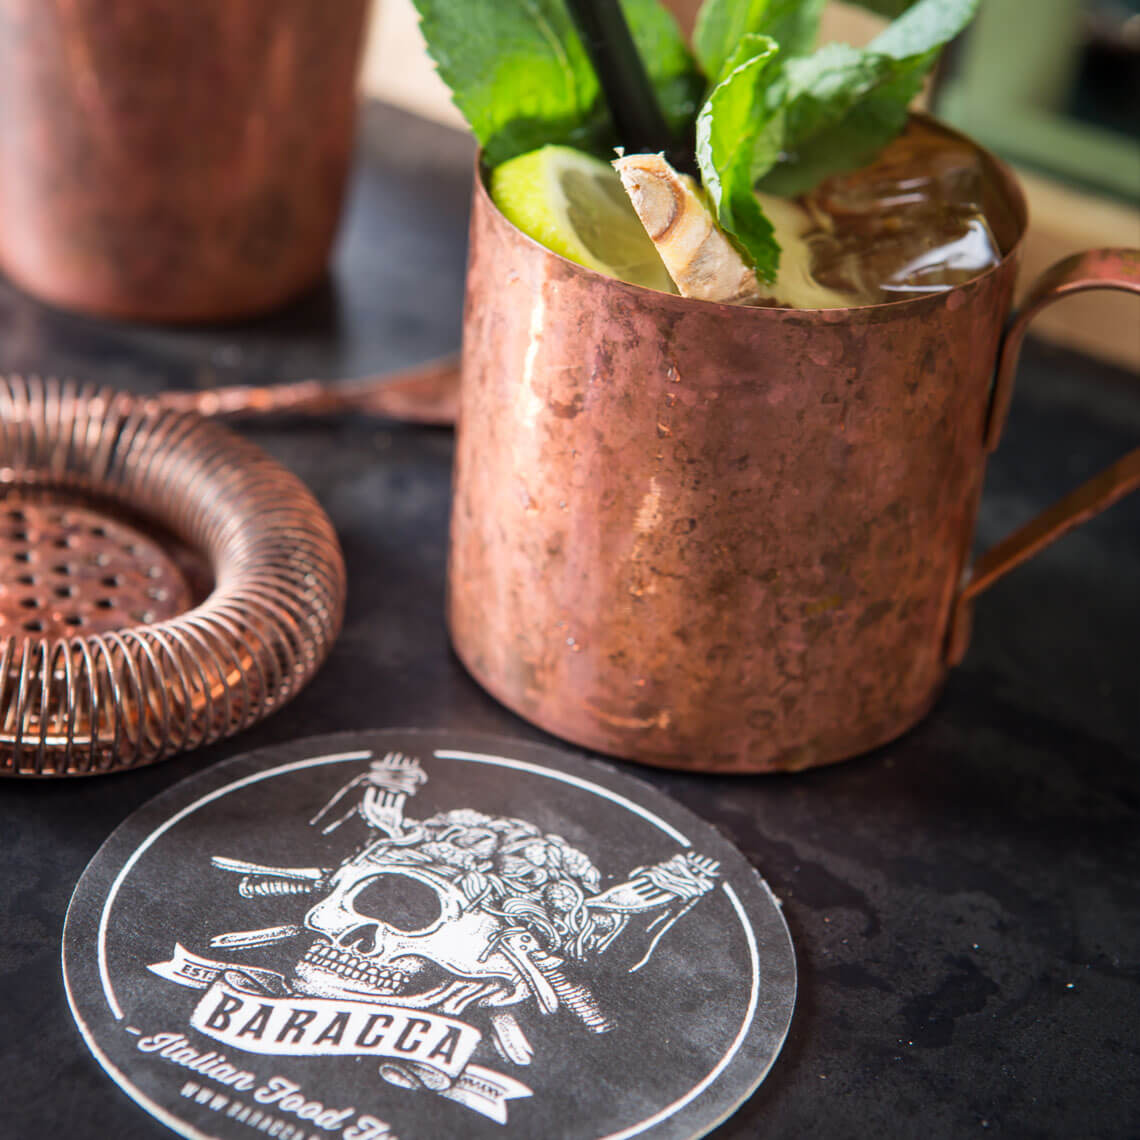 baracca_skull_cocktail_570x570